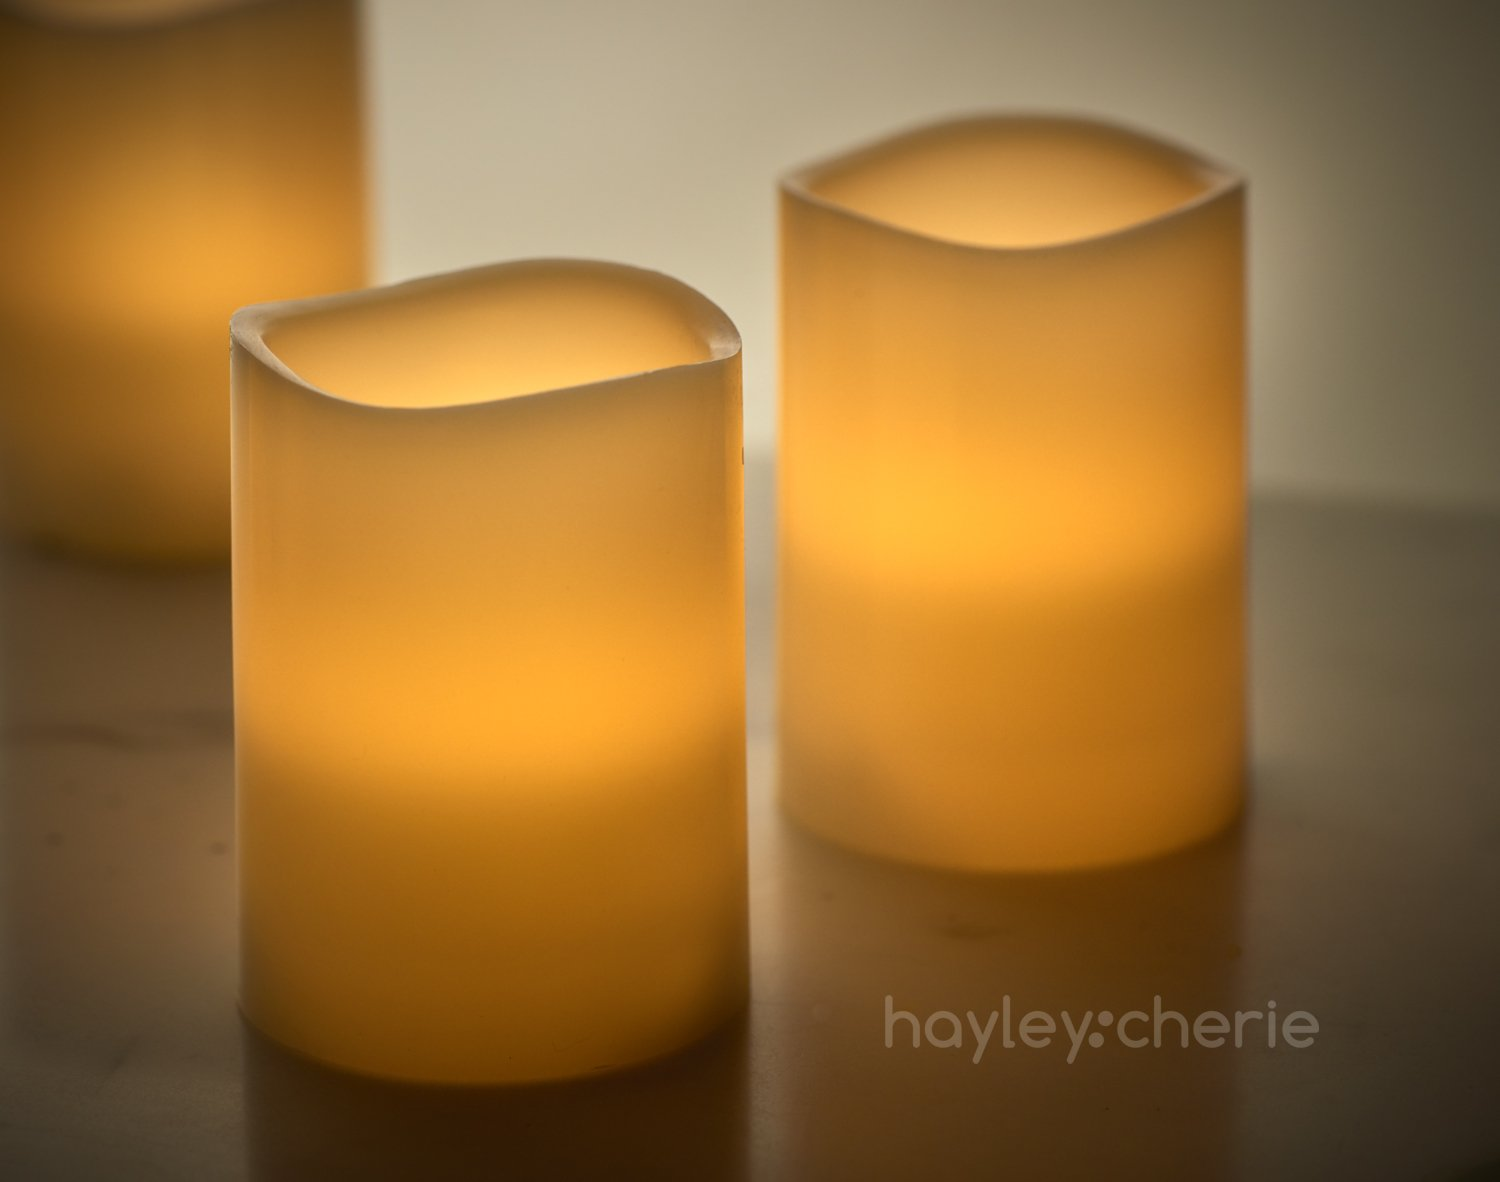 "Hayley Cherie - Real Wax Flameless Candles with Timer (Set of 6) - Ivory LED Candles 3"" wide x 4"" tall - Flickering Amber Flame - Battery Operated Pillar Candles - Large Unscented by Hayley Cherie (Image #4)"